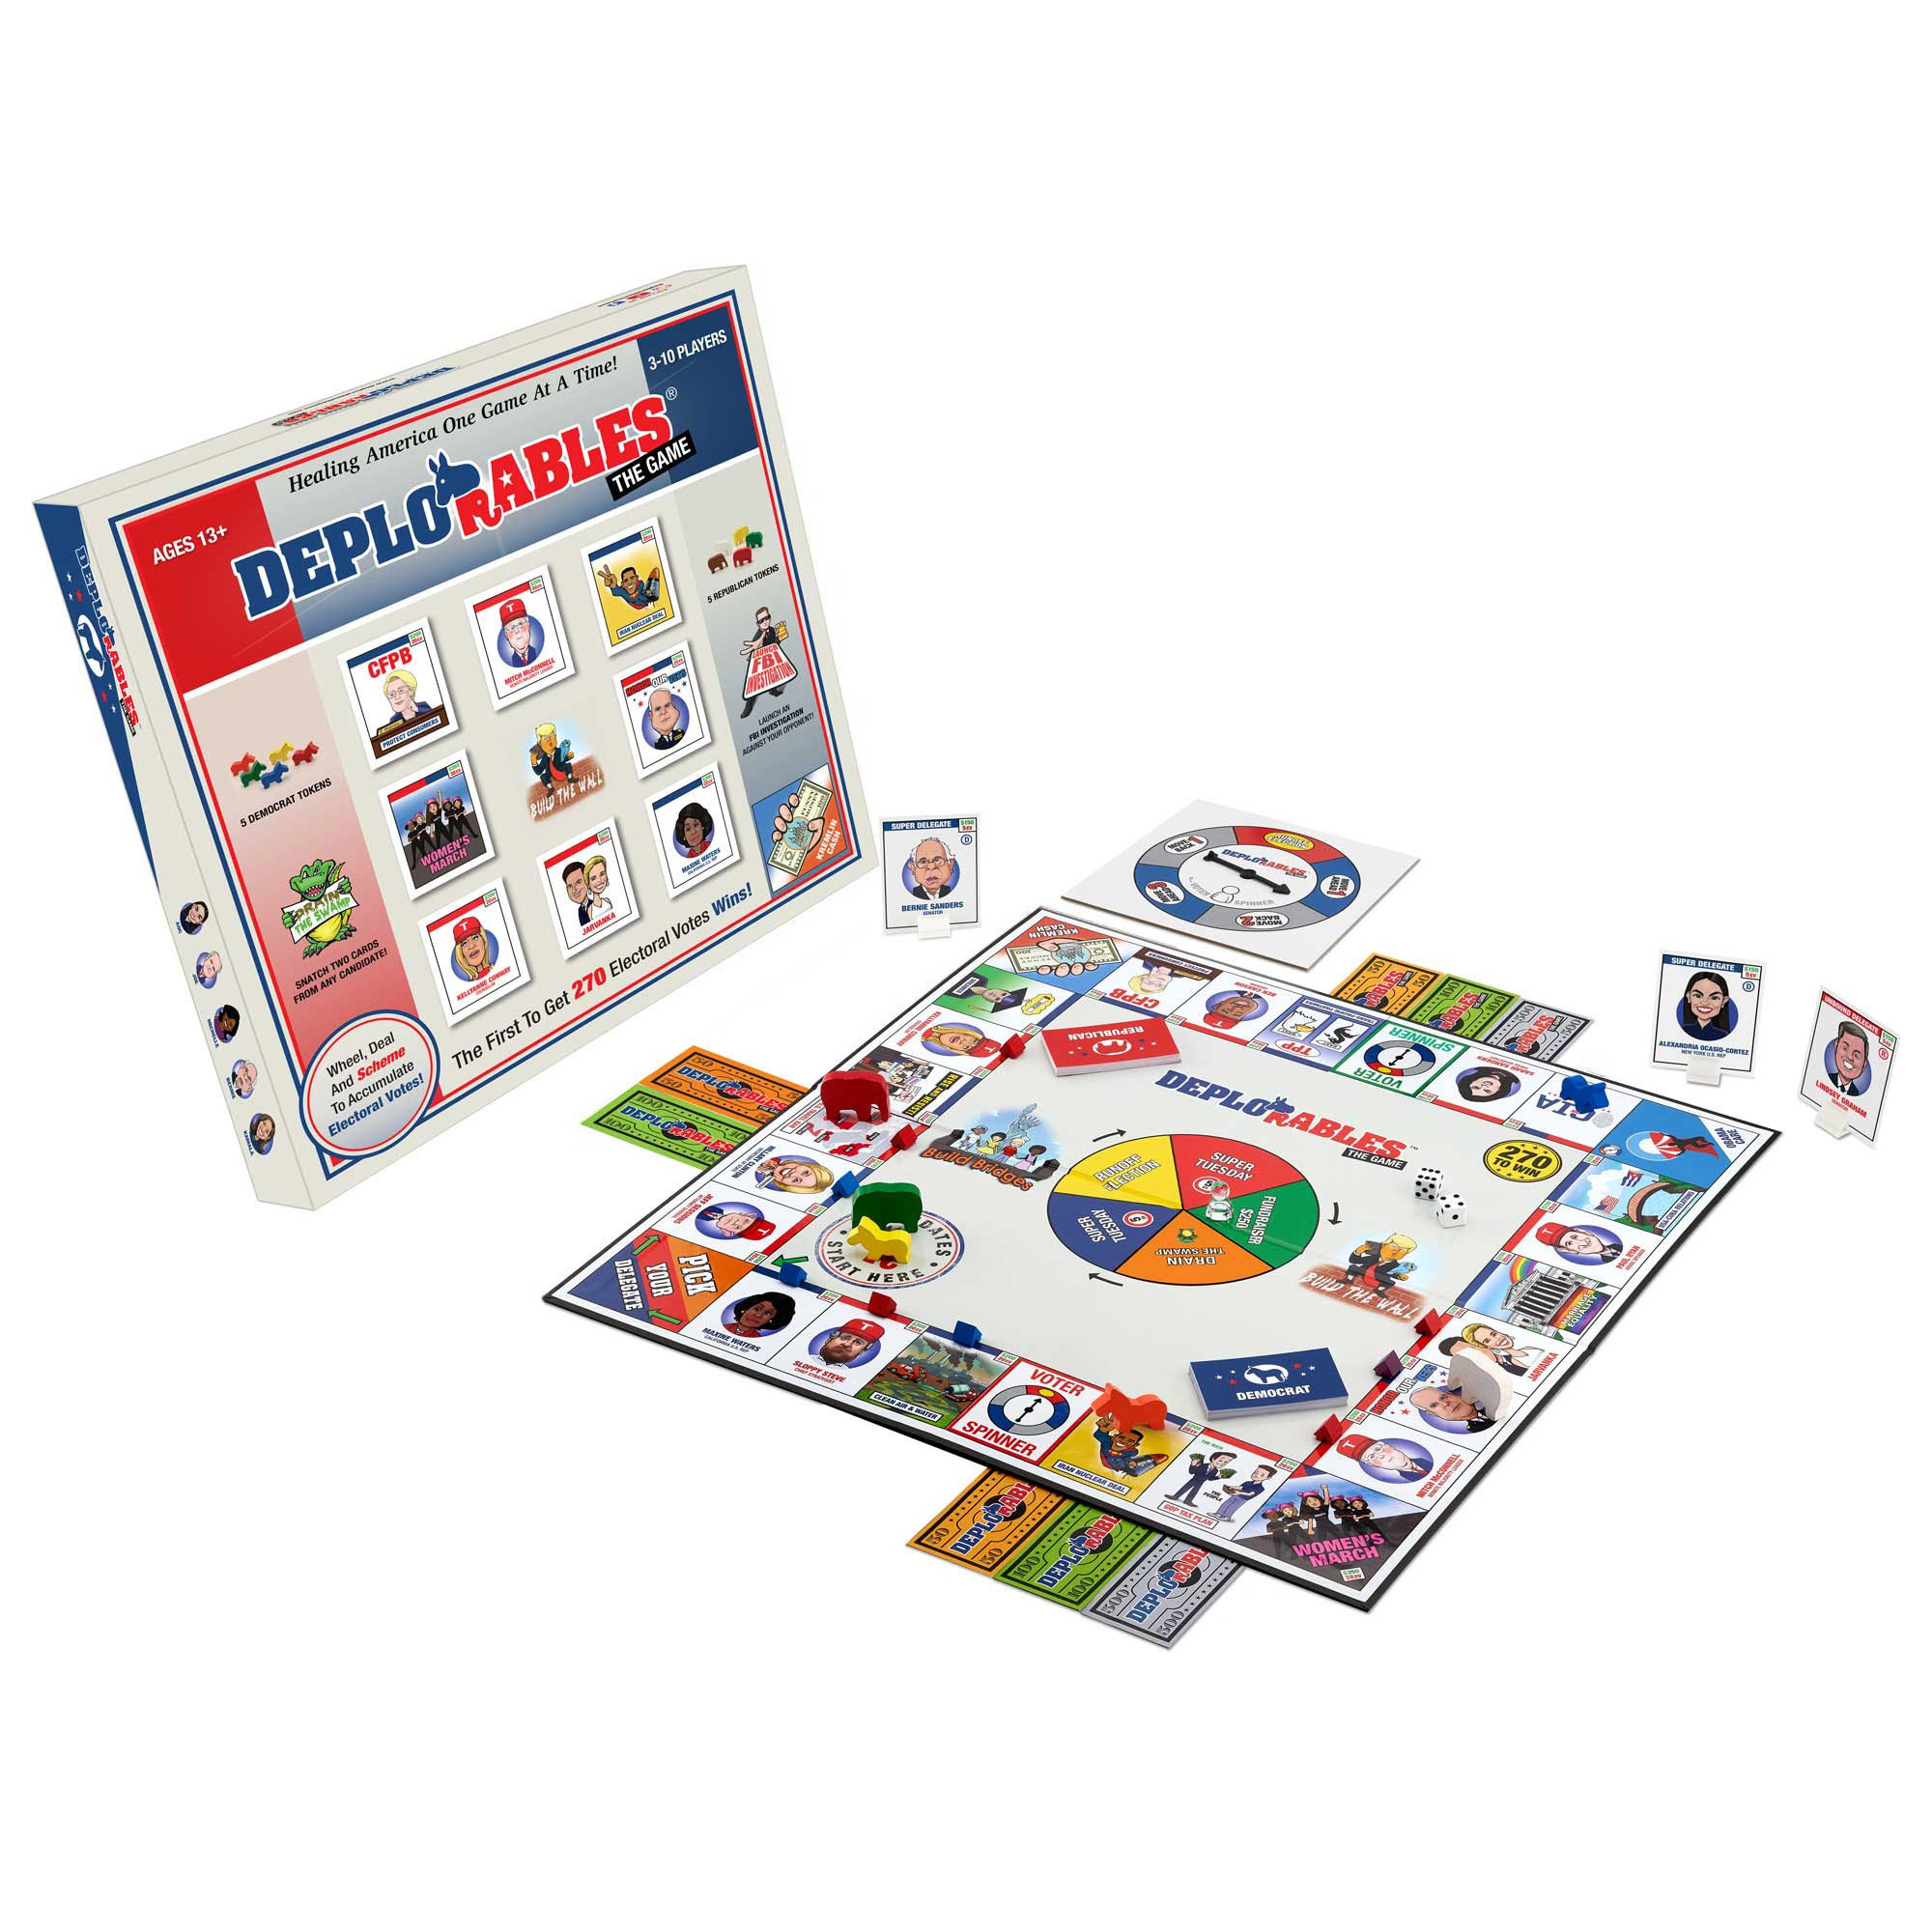 Deplorable the Game